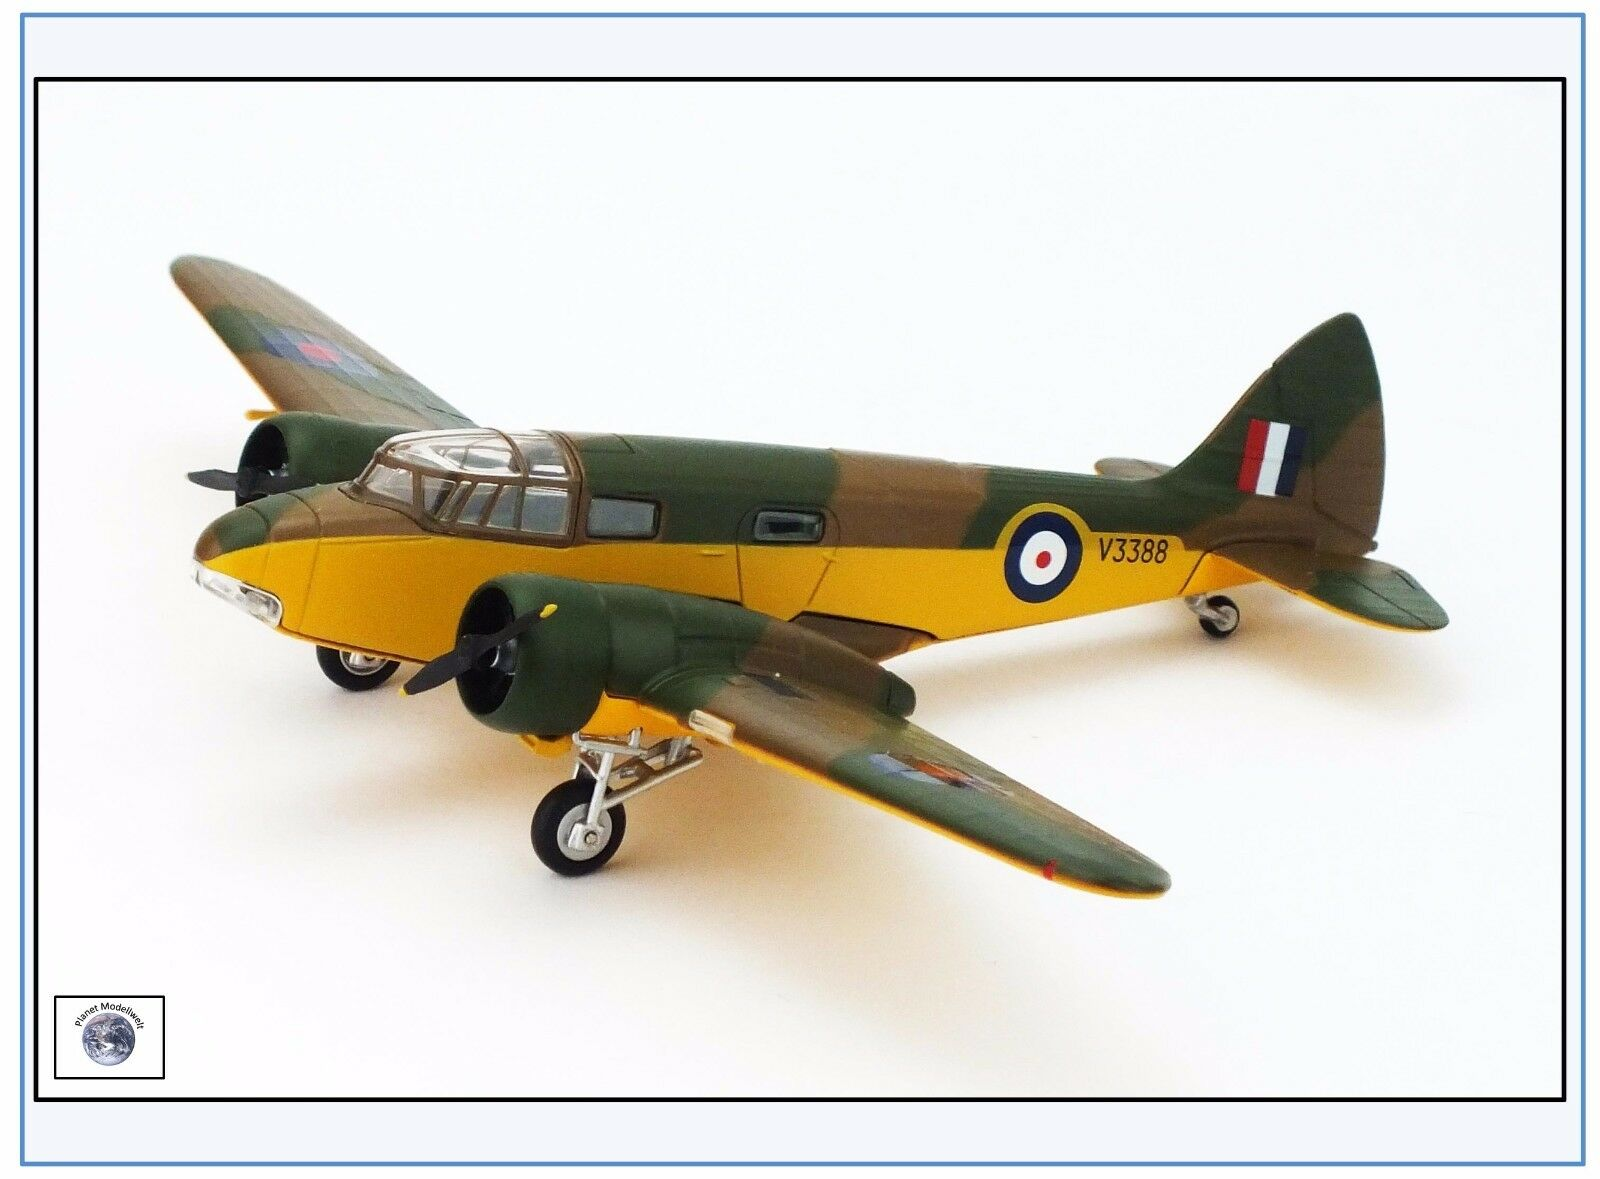 AO003 Airspeed AS.10 Oxford RAF Bomber Trainer 1937-56, Oxford 1 72, N 17 &